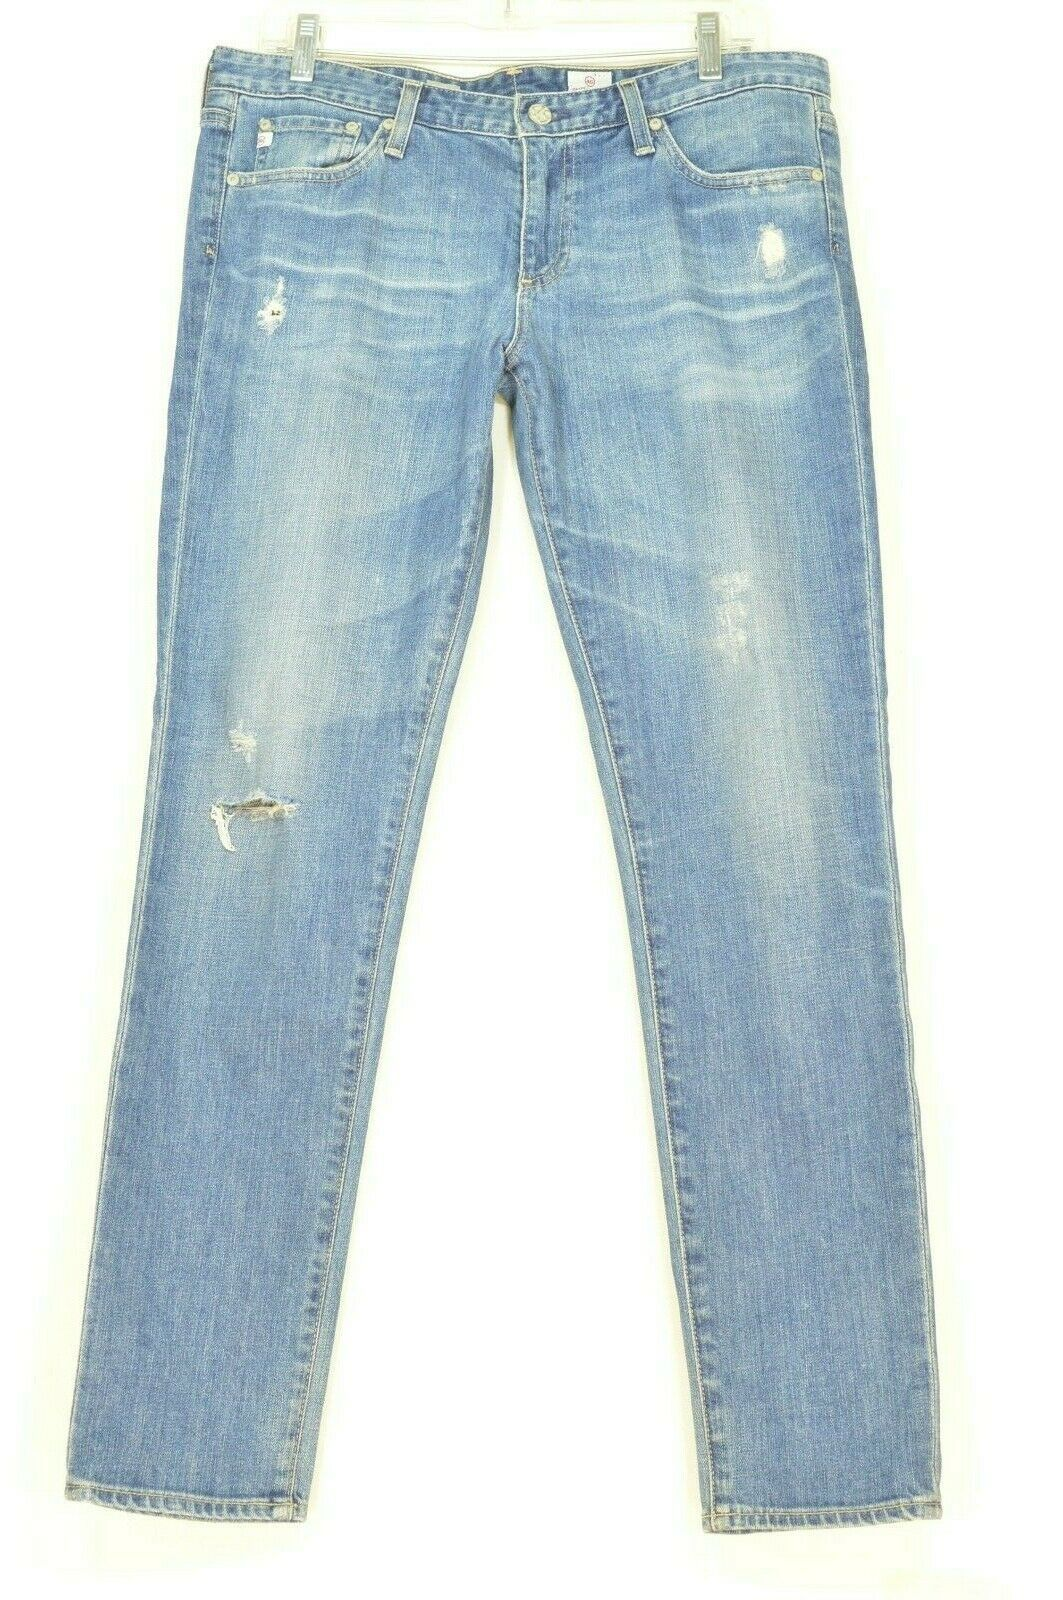 AG Adriano Goldschmied jeans 31 x 31 Stilt cigarette leg 17Y - SVT destroyed USA